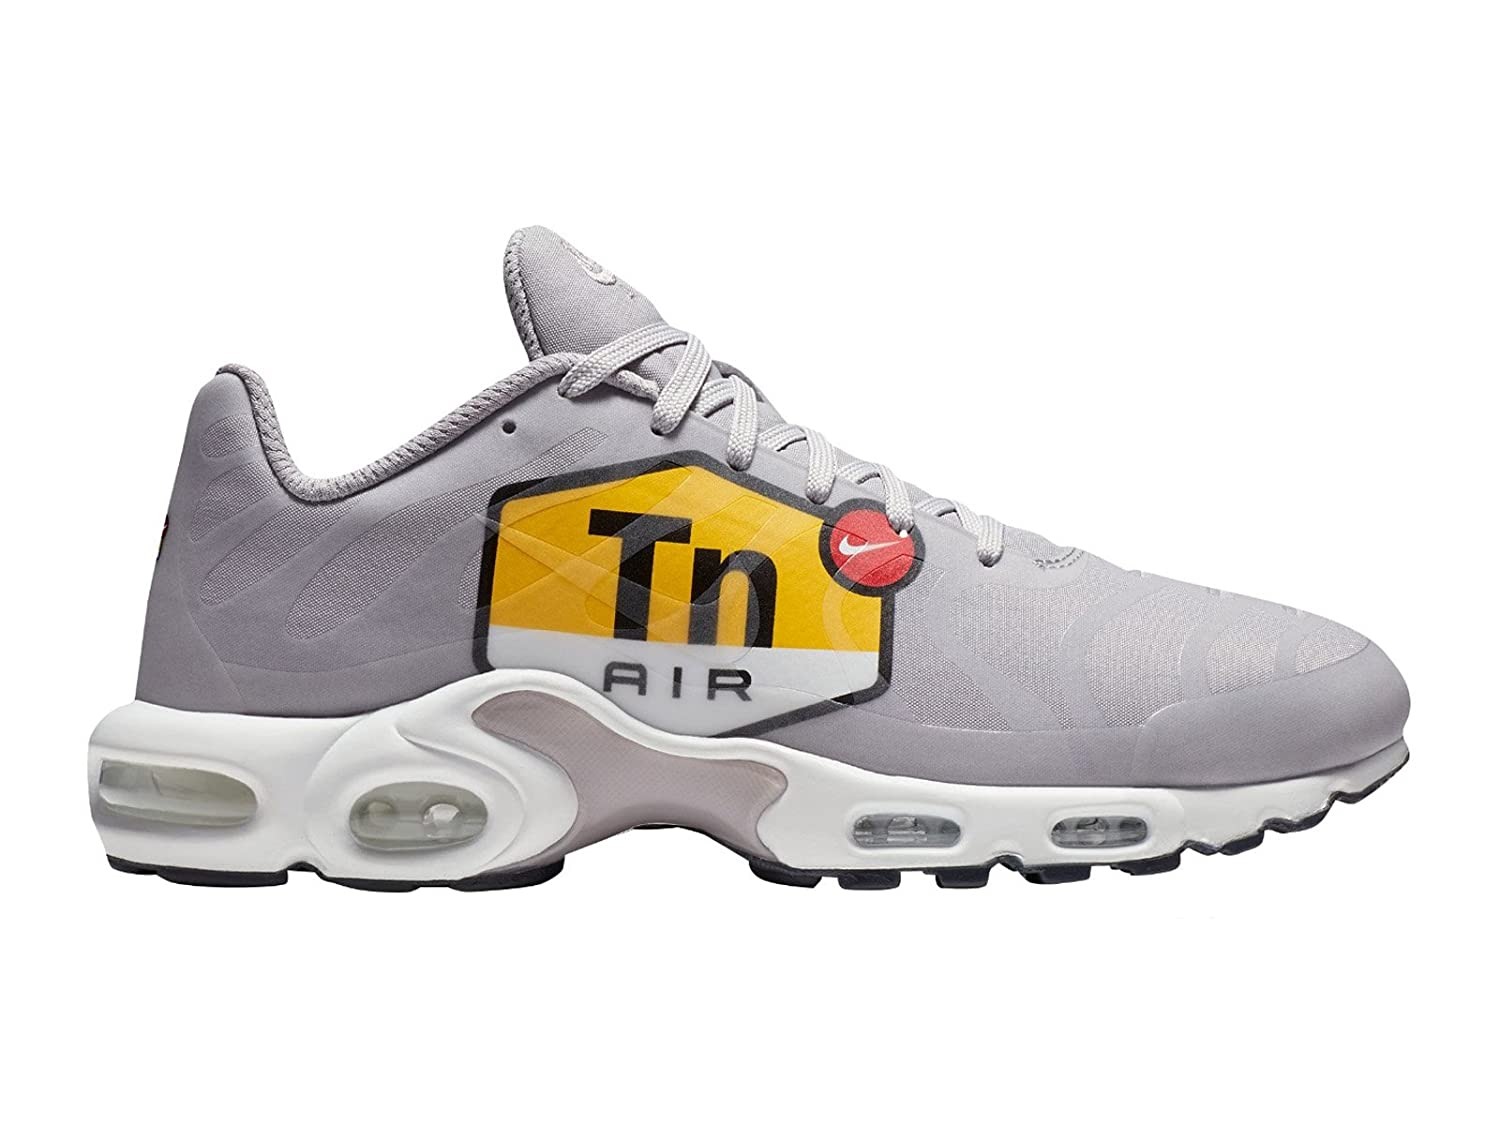 273d4302b1 Amazon.com | NIKE Men's Air Max Plus NS GPX SP Atmosphere Grey/Atmosphere  Grey/Black/White Nylon Running Shoes 9 D(M) US | Road Running